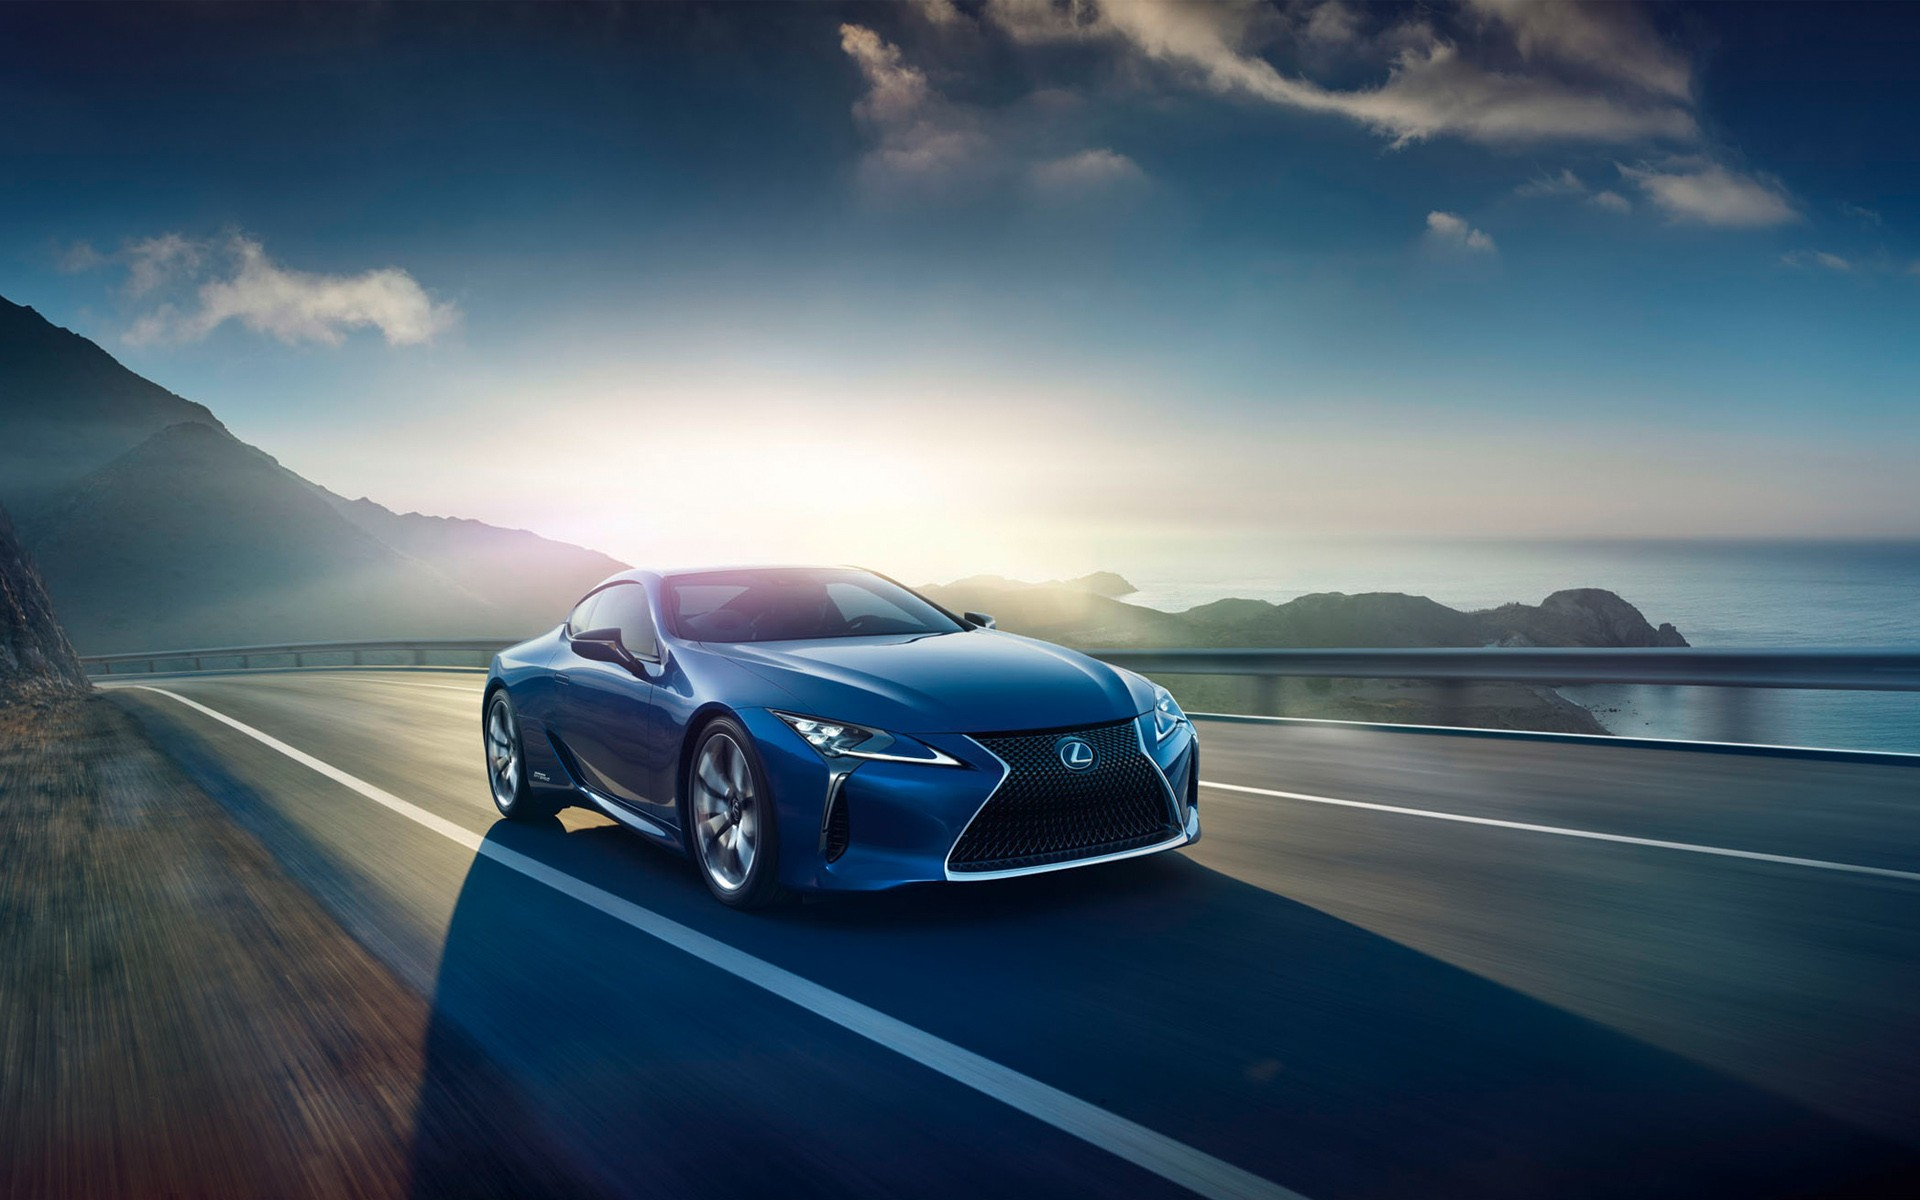 2016 lexus lc 500h luxury coupe wallpaper hd car - Luxury car hd wallpaper download ...